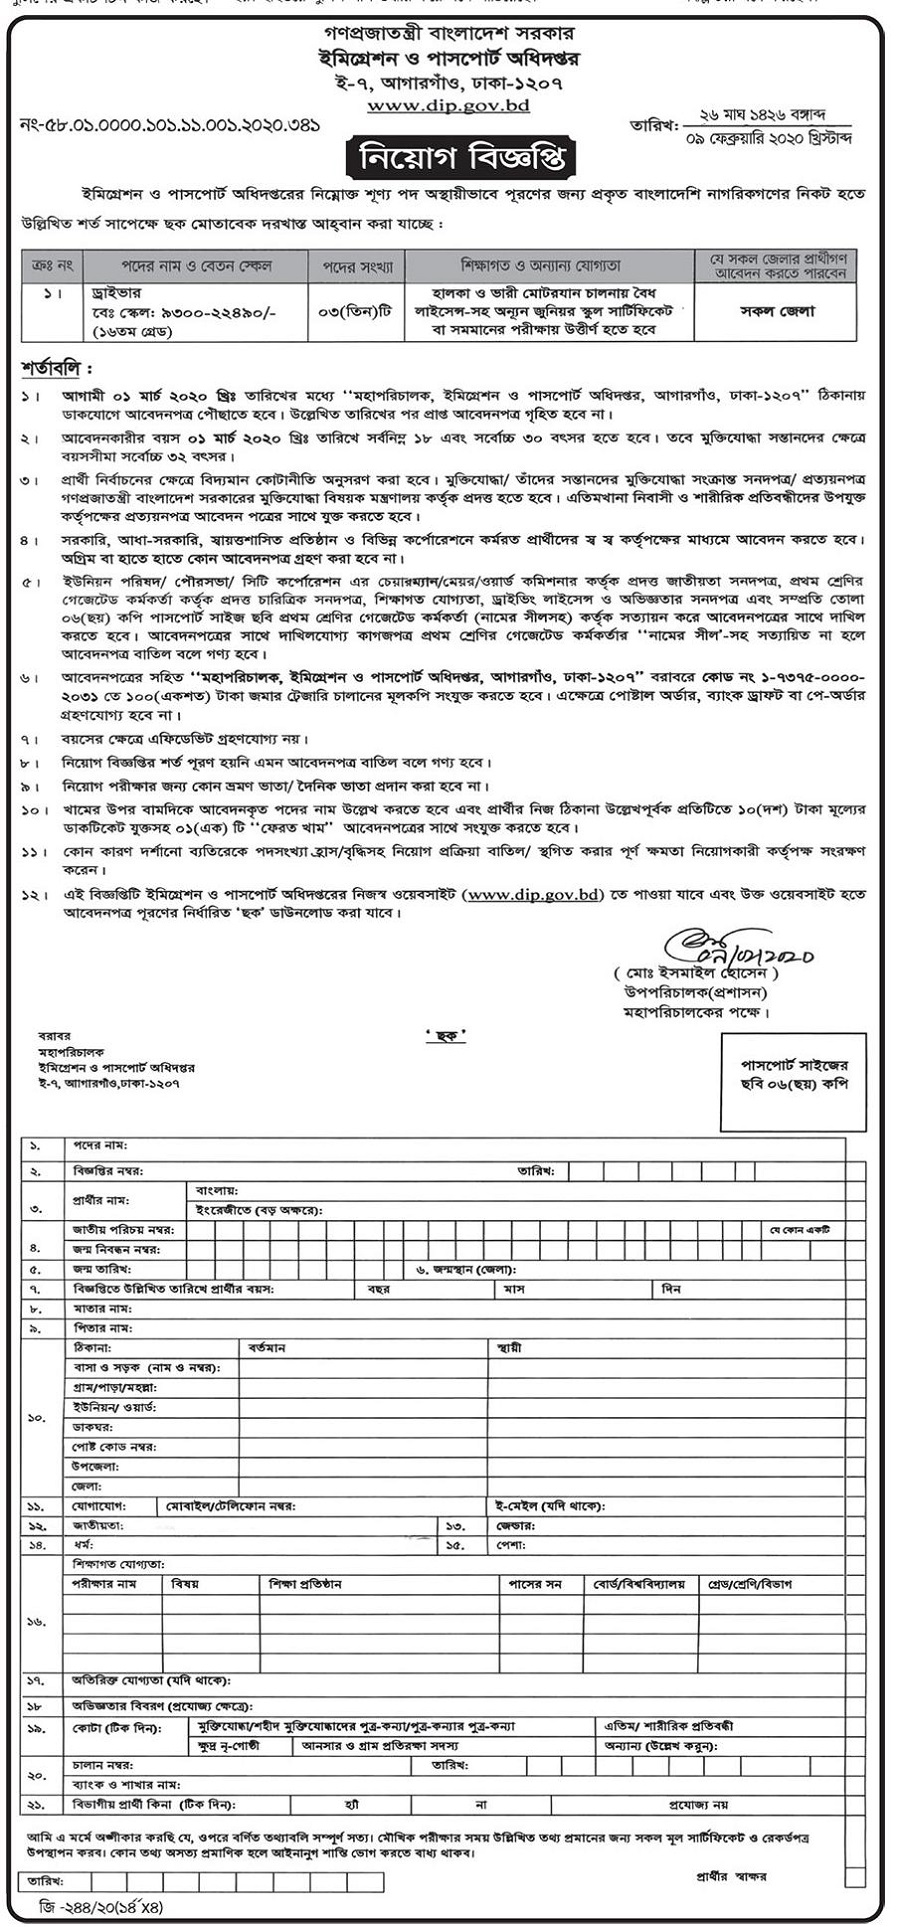 Department of Immigration and Passports Office Job Circular 2020